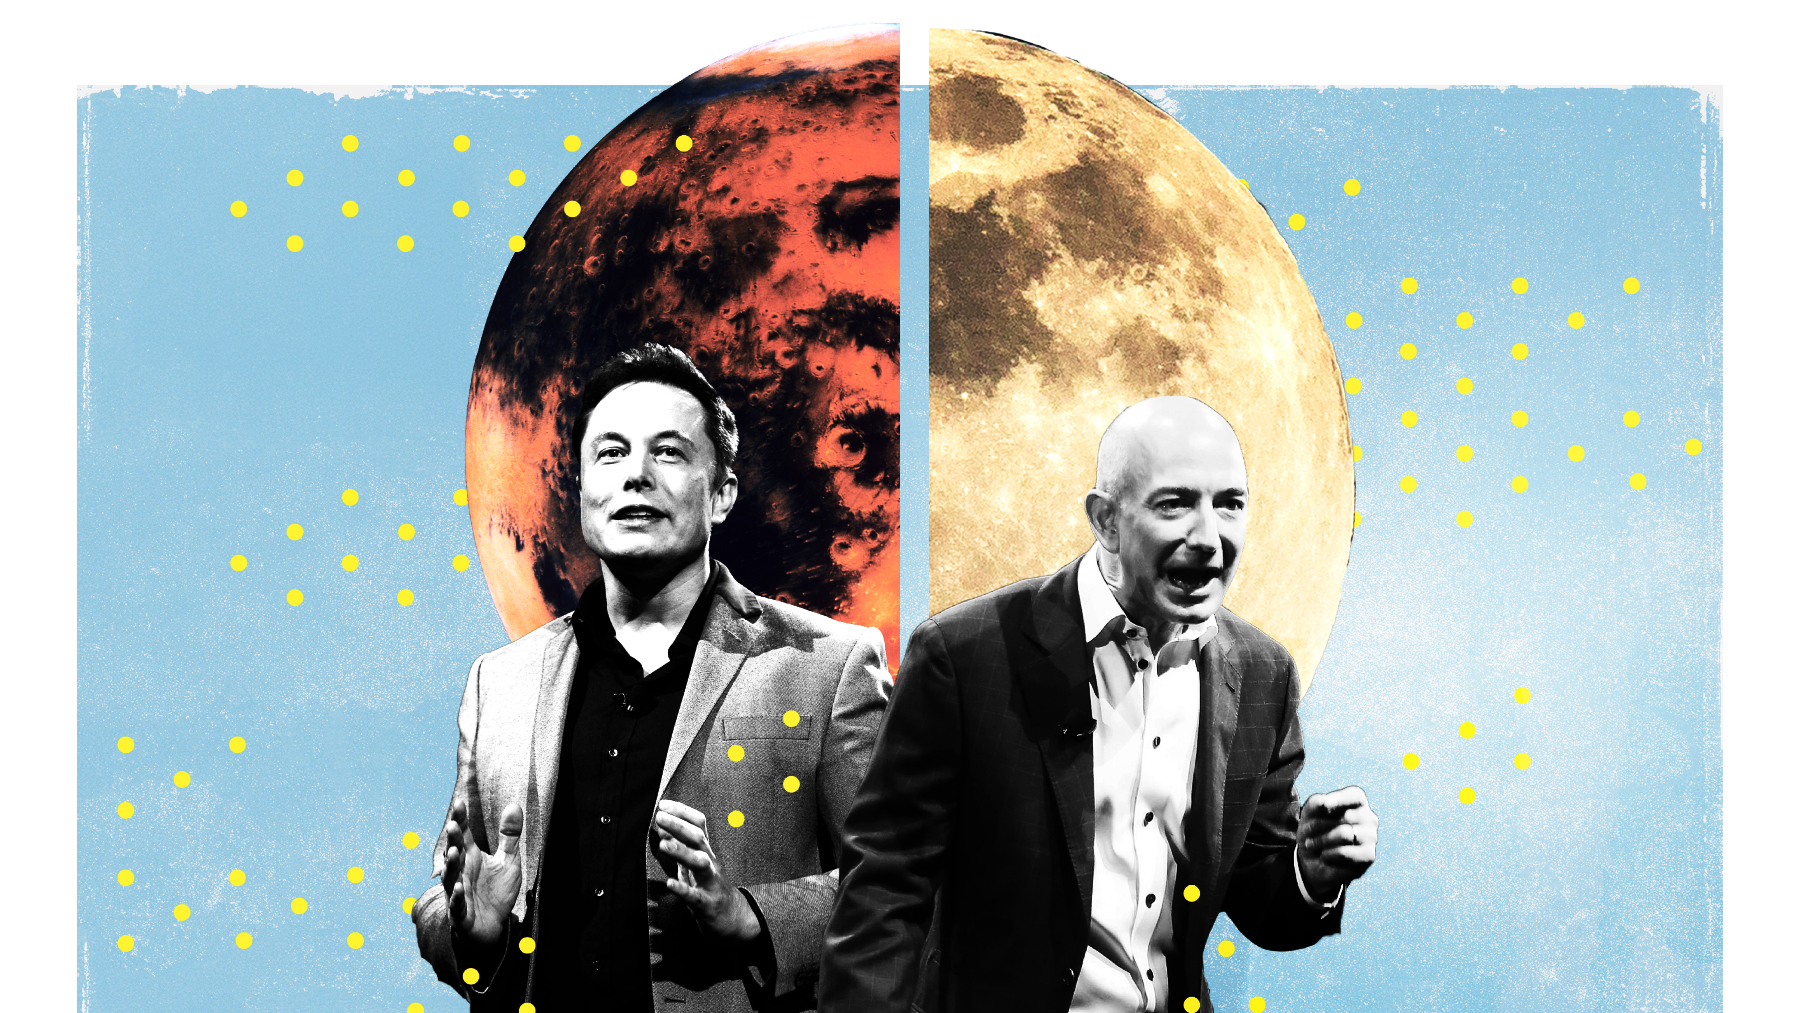 Jeff Bezos and Elon Musk want to colonize space to save humanity - Vox